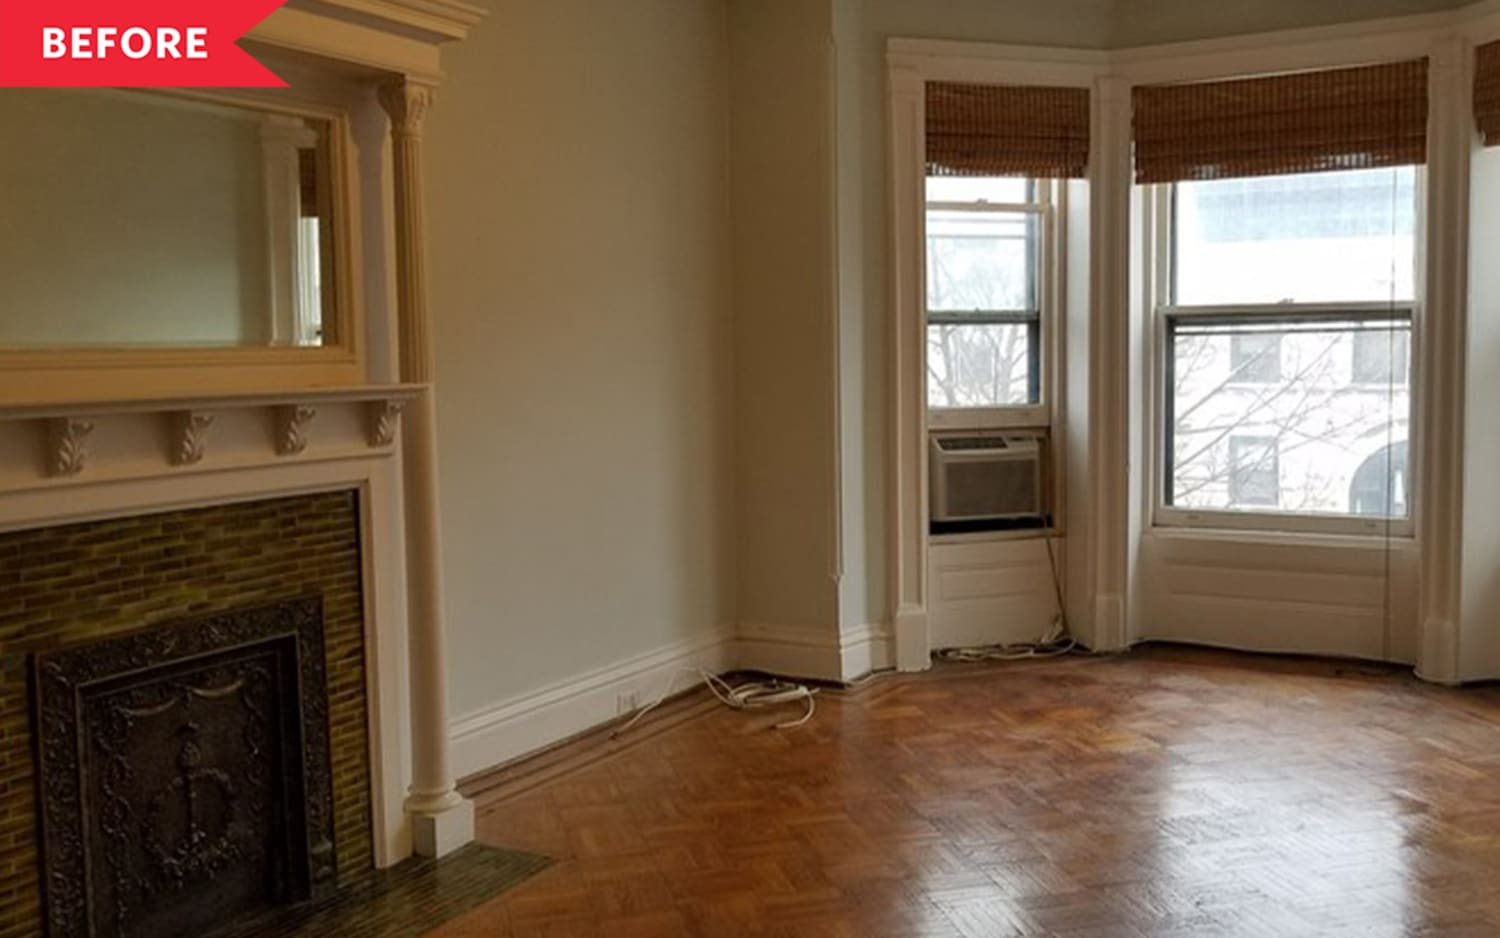 Before and After: A Light-Filled Refresh for This 1920s Living Room